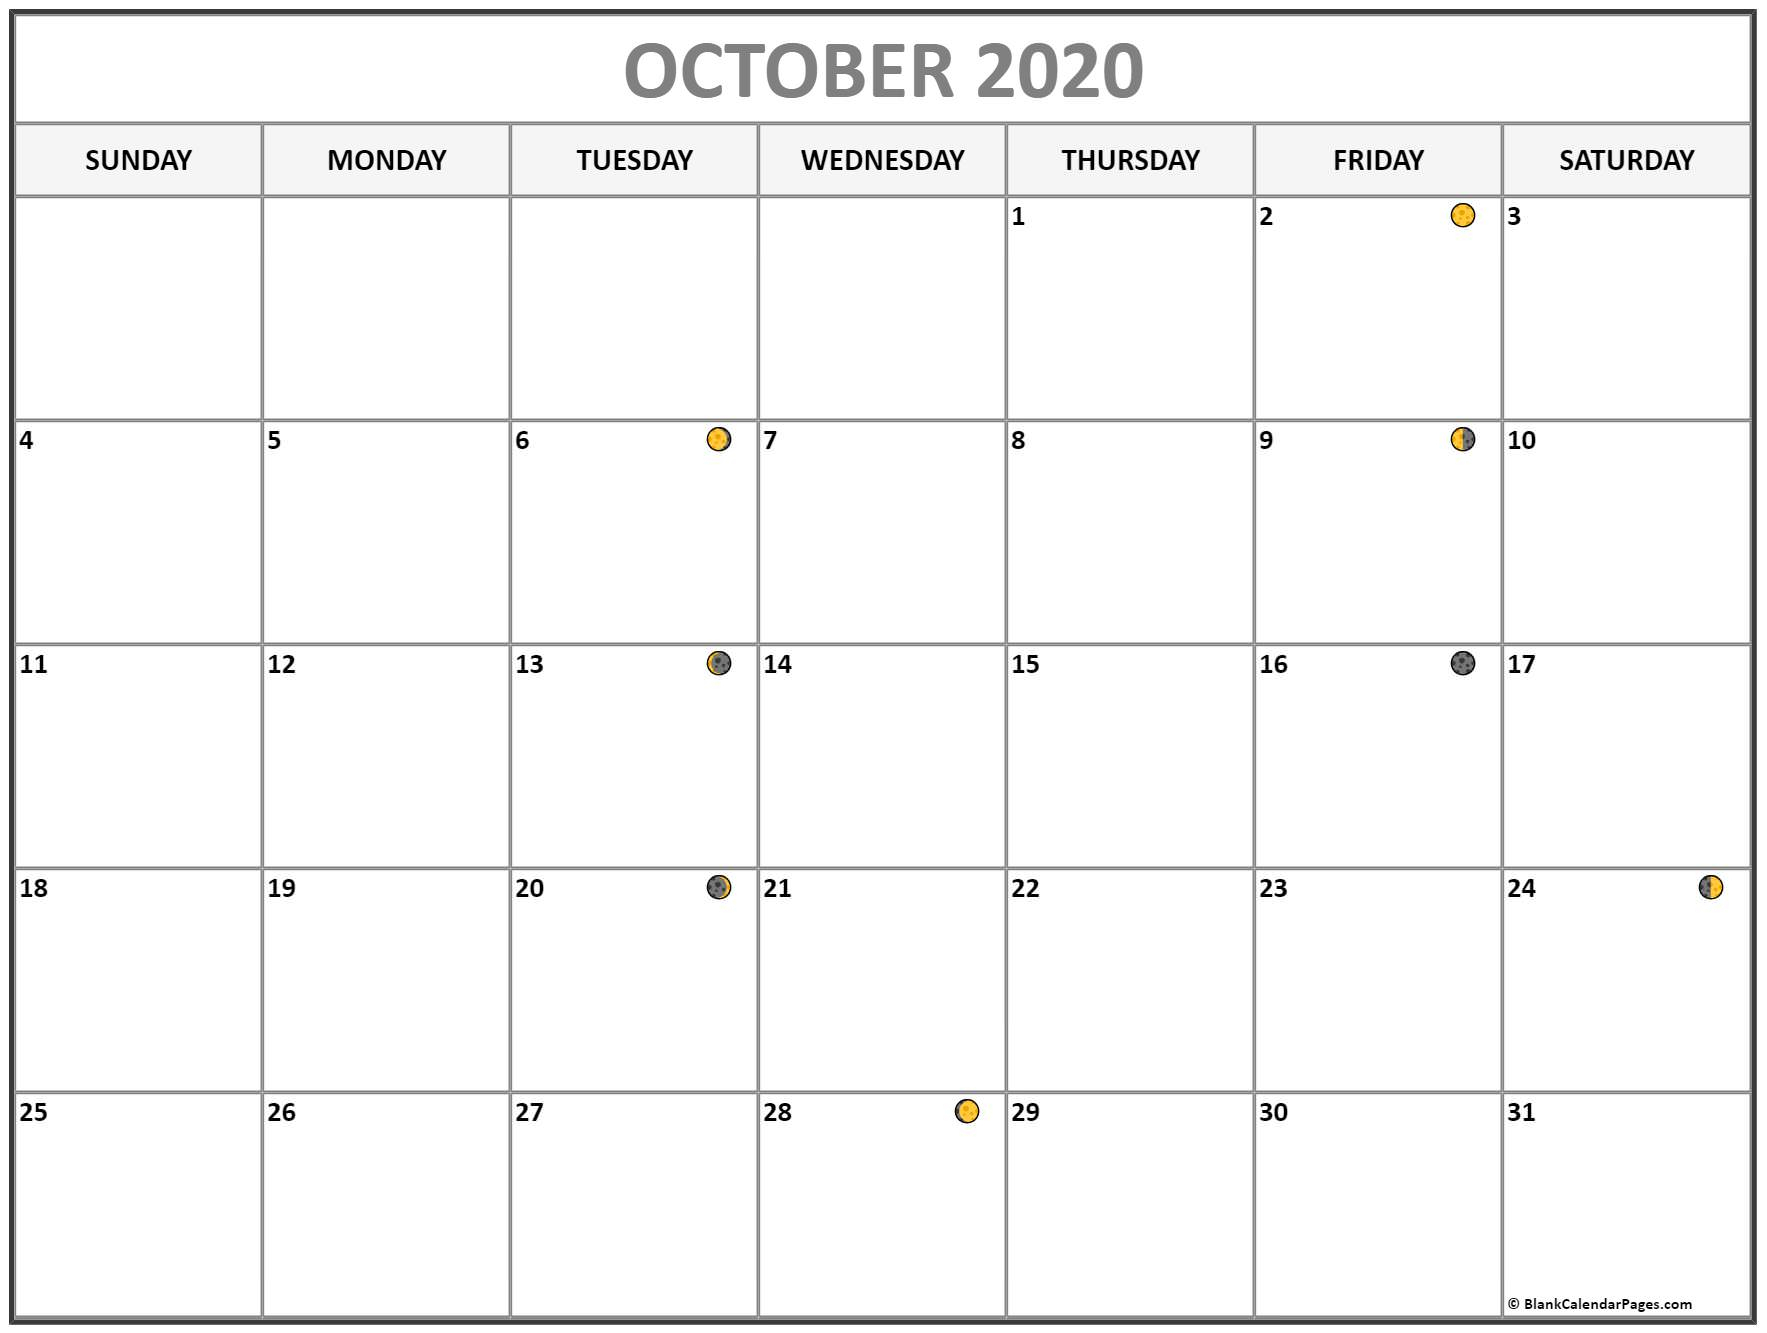 October 2020 Lunar Calendar | Moon Phase Calendar with Lunar Calendar October 2020